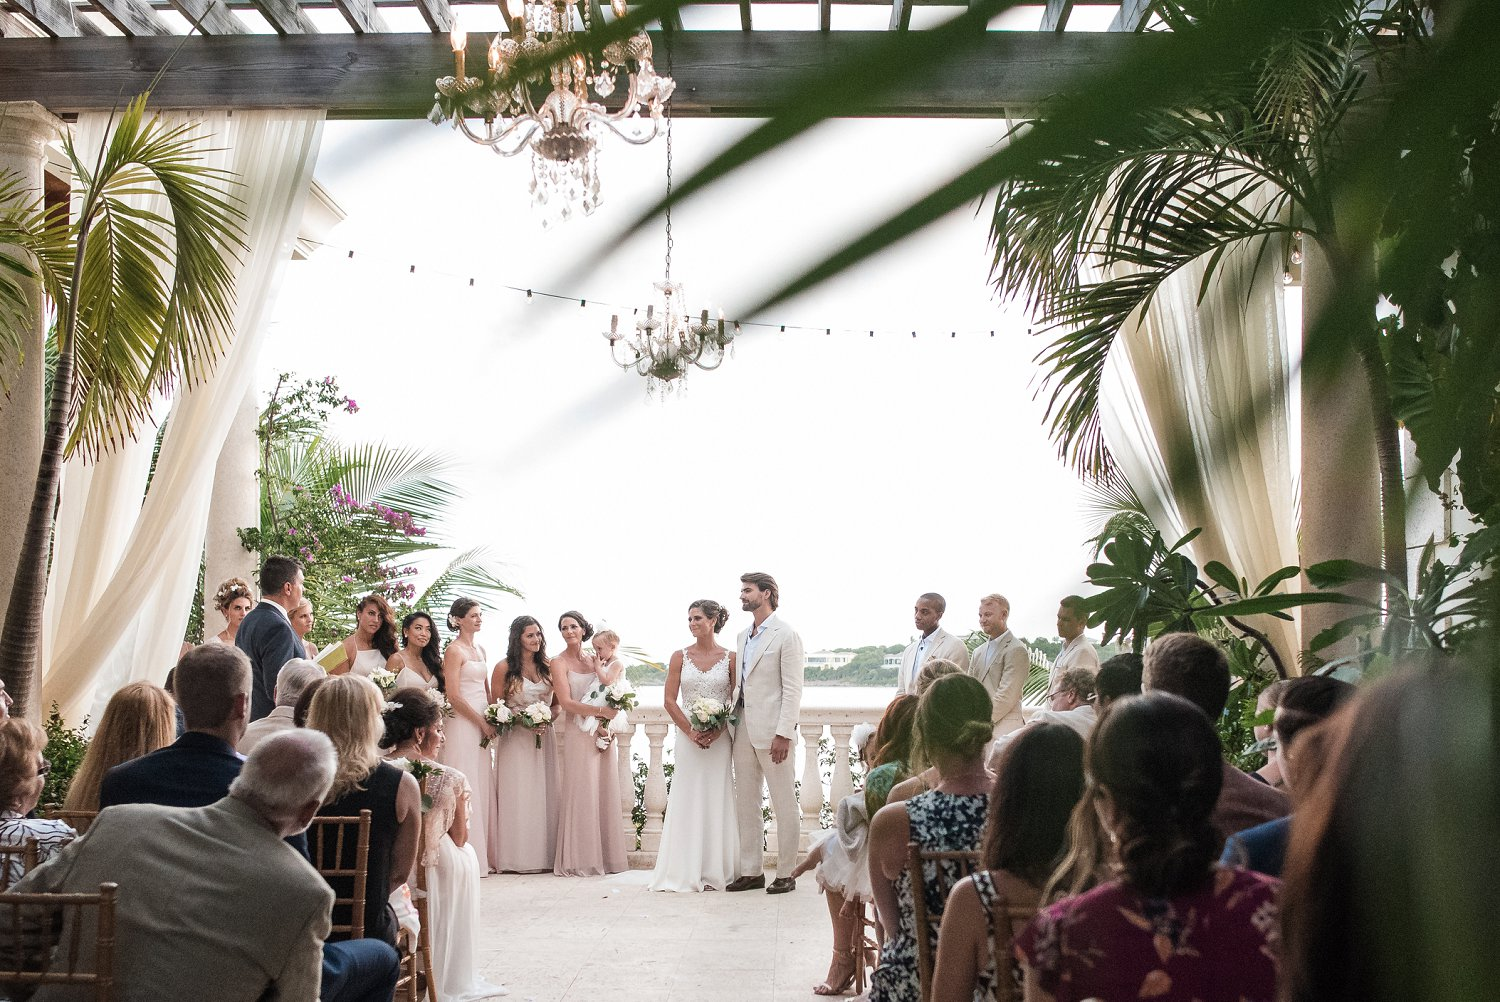 Wedding ceremony at Villa Serenita planned by Blue Sky Ceremony